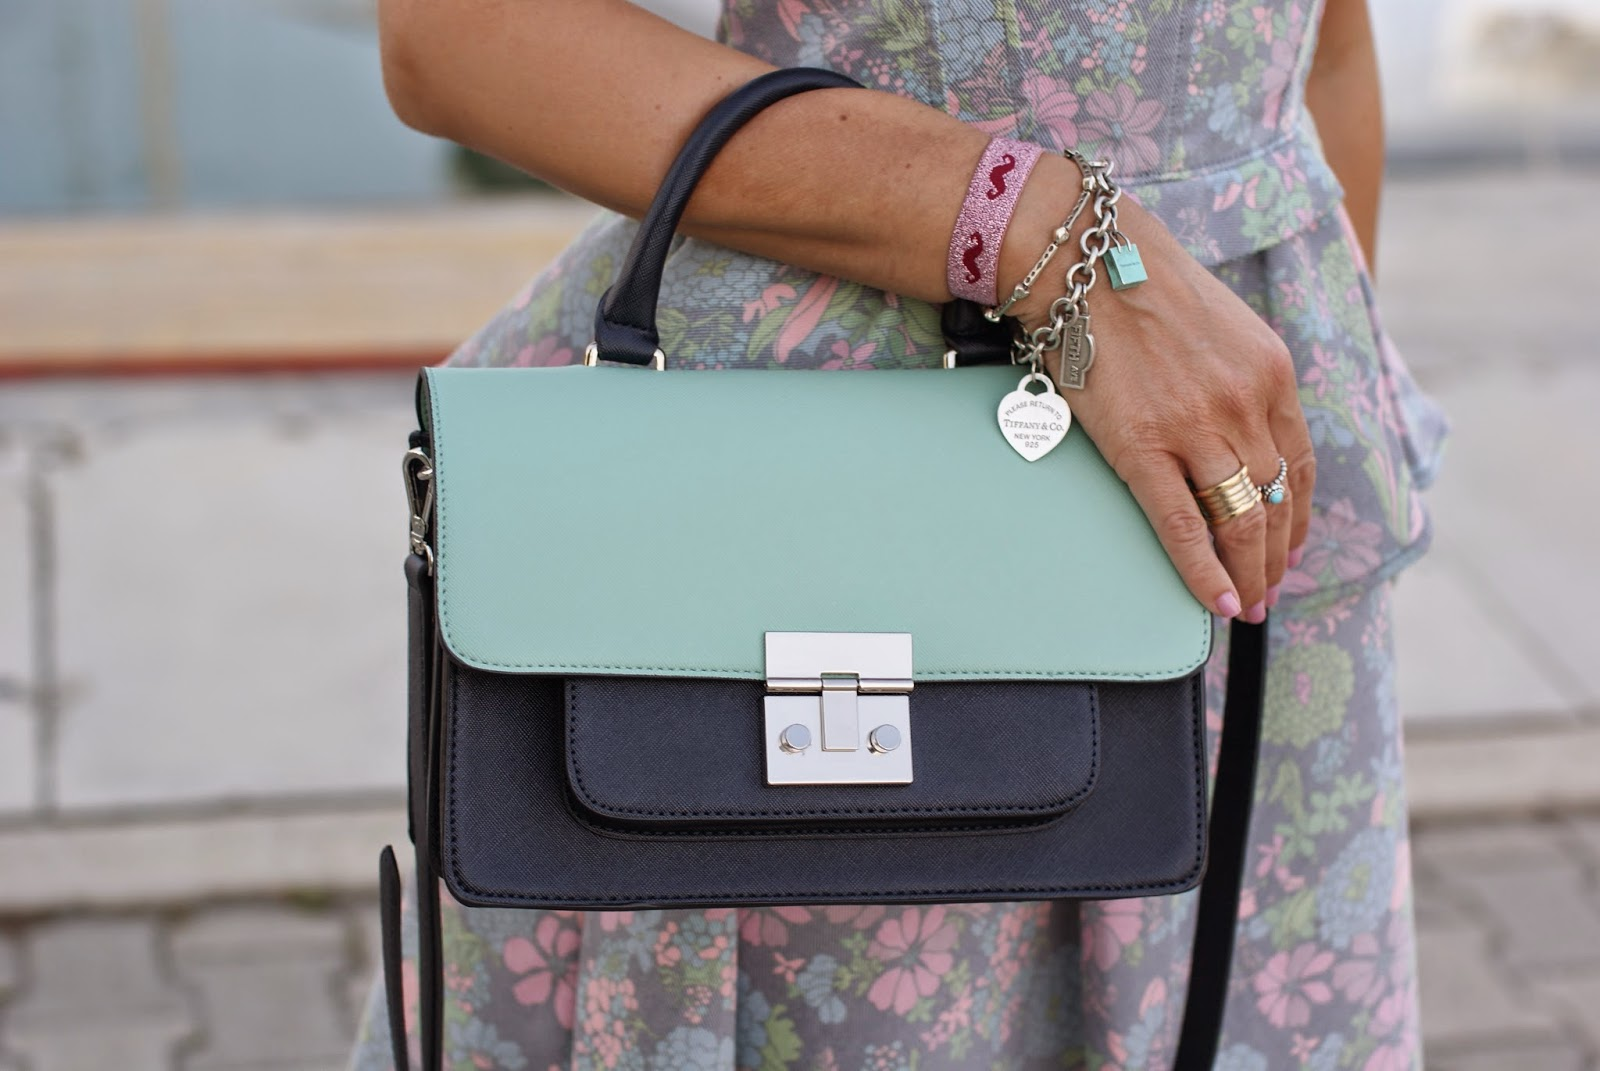 zara mint bag, ventiquattro braccialetto, tiffany bracelet, bvlgari bzero ring, Fashion and Cookies, fashion blogger